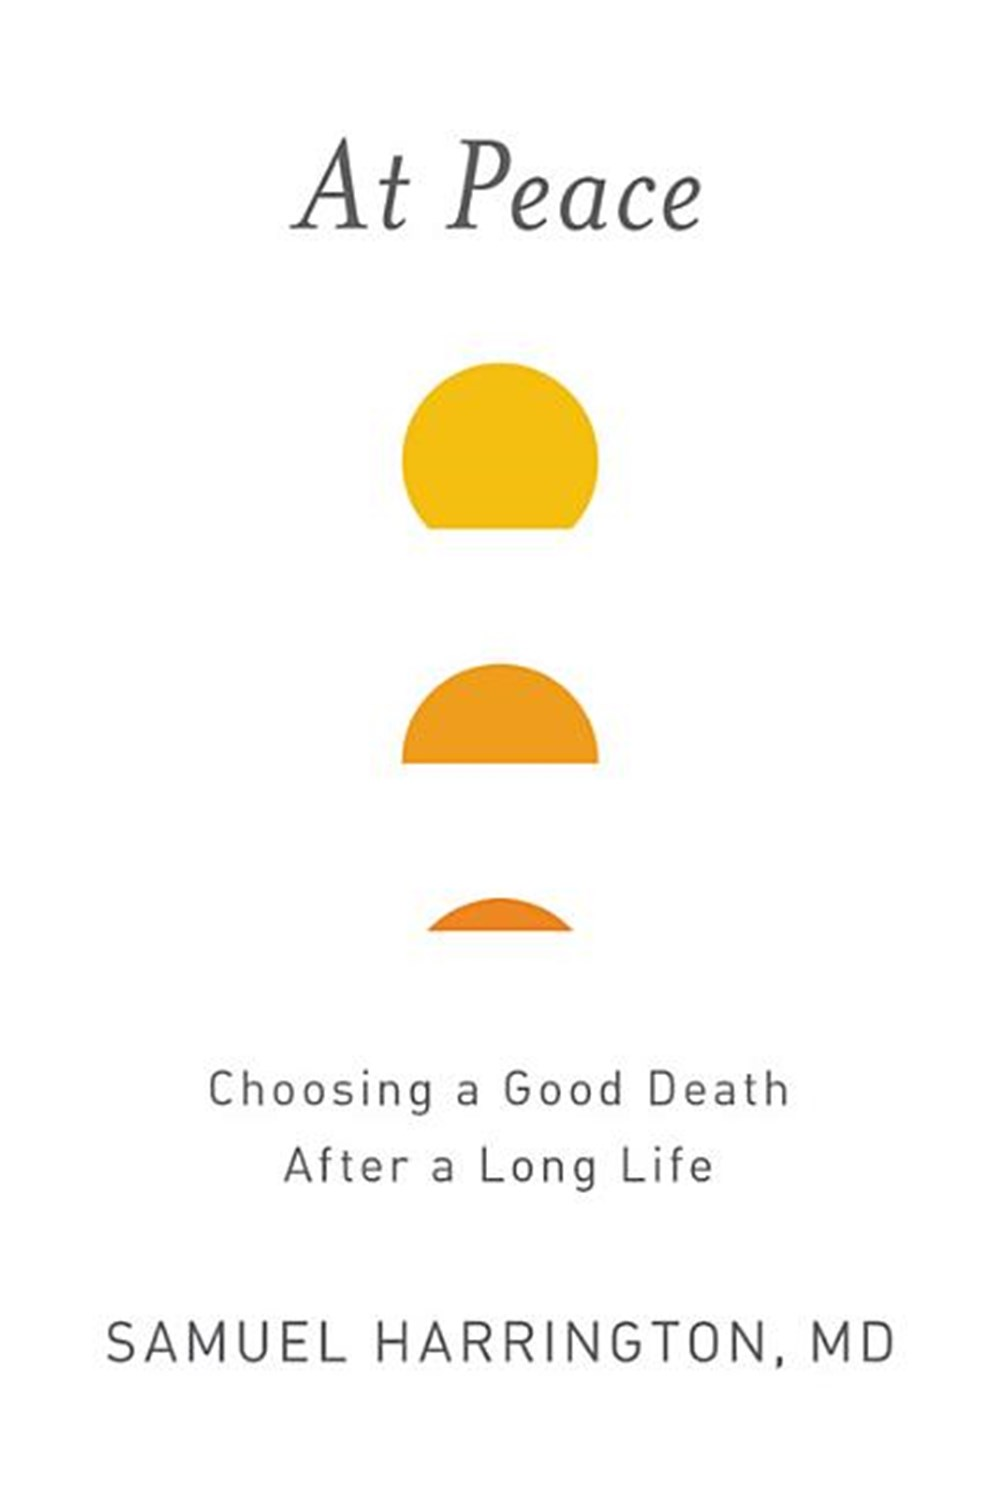 At Peace Choosing a Good Death After a Long Life